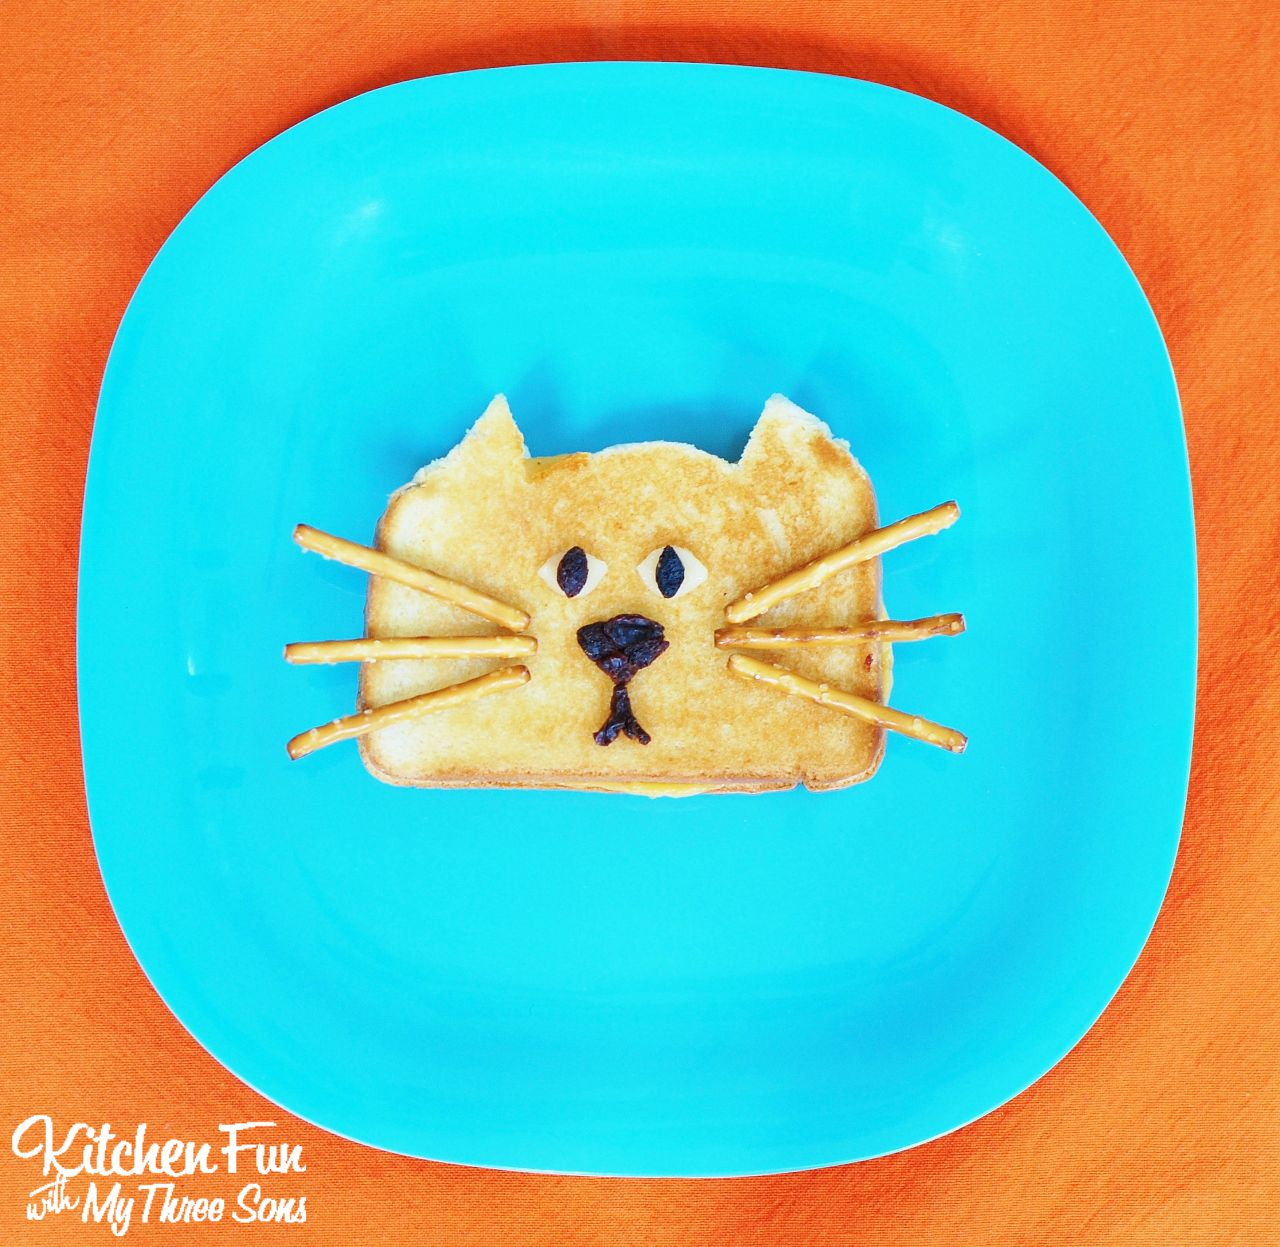 Kitchen Fun And Crafty Friday Link Party 167: Grilled Cheese Cat With A $50 Kroger Giveaway